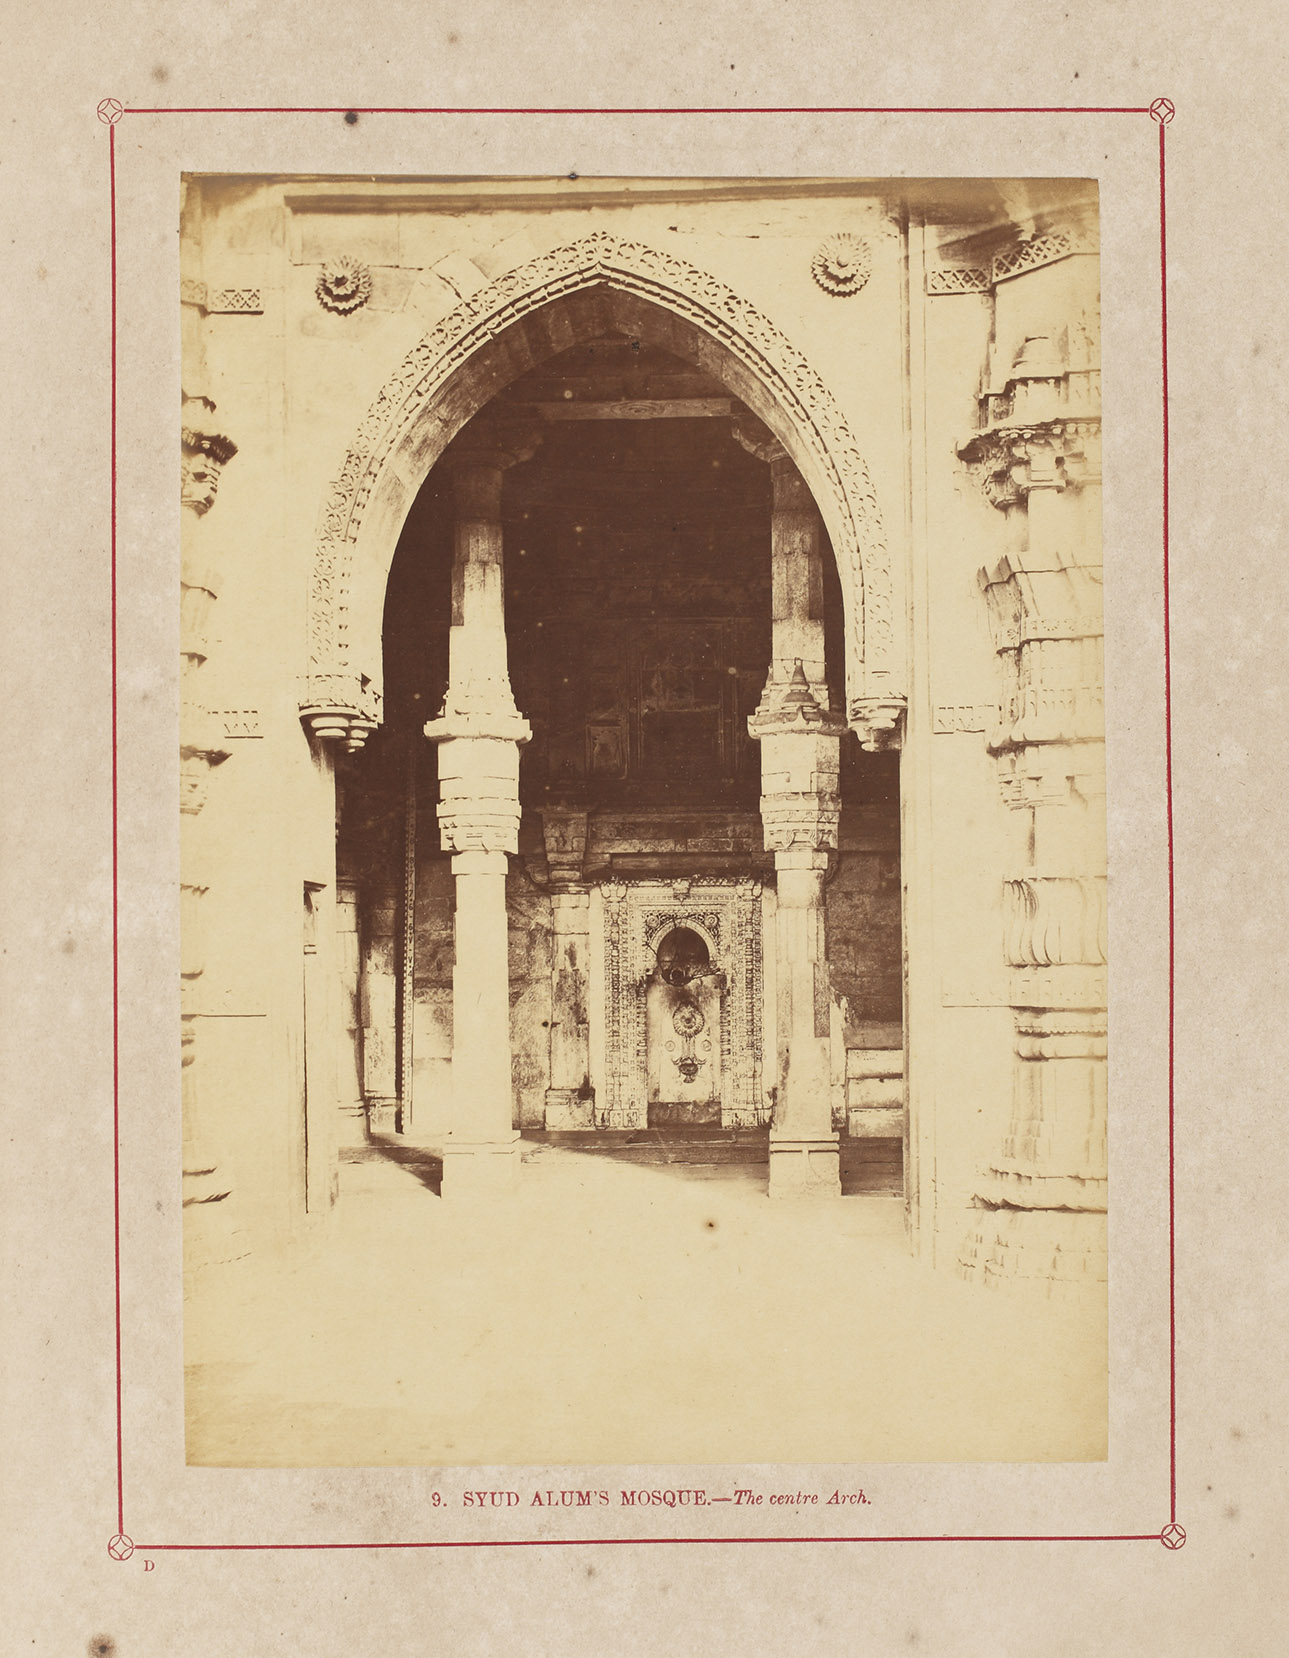 Brick by Brick: The Built Legacies of the Gujarat Sultanate - Islamic Architecture, Age of Empires, Ahmed Shah I, Ahmedabad, Architecture, Cambay, Champaner, Conquests & Kingdoms, featured, Gujarat, Gujarat Sultanate, Islamic Monuments, Jama Masjid, Kingdoms, Mahmud Beghada, Sultanate